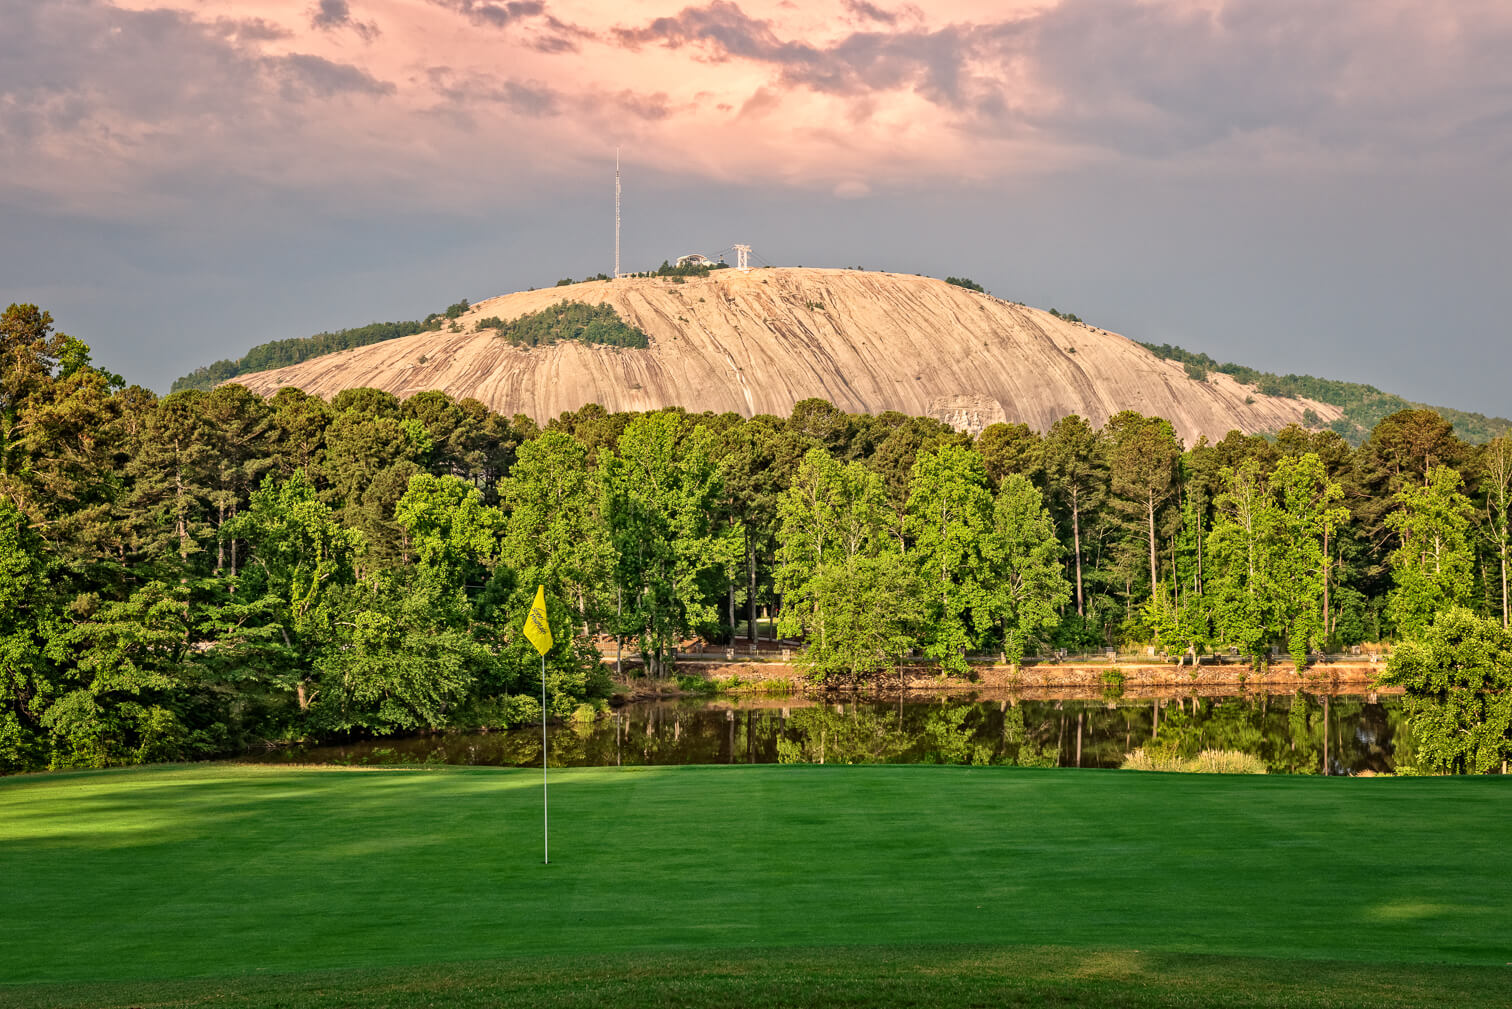 Welcome to the website for the Stone Mountain Hamfest. This is where you will find out about the hamfest; dates, forums & contests. You can also pre-purchase tickets on this site at the ticket booth.. Purchase your pre-admission ticket using our online ticket booth here.